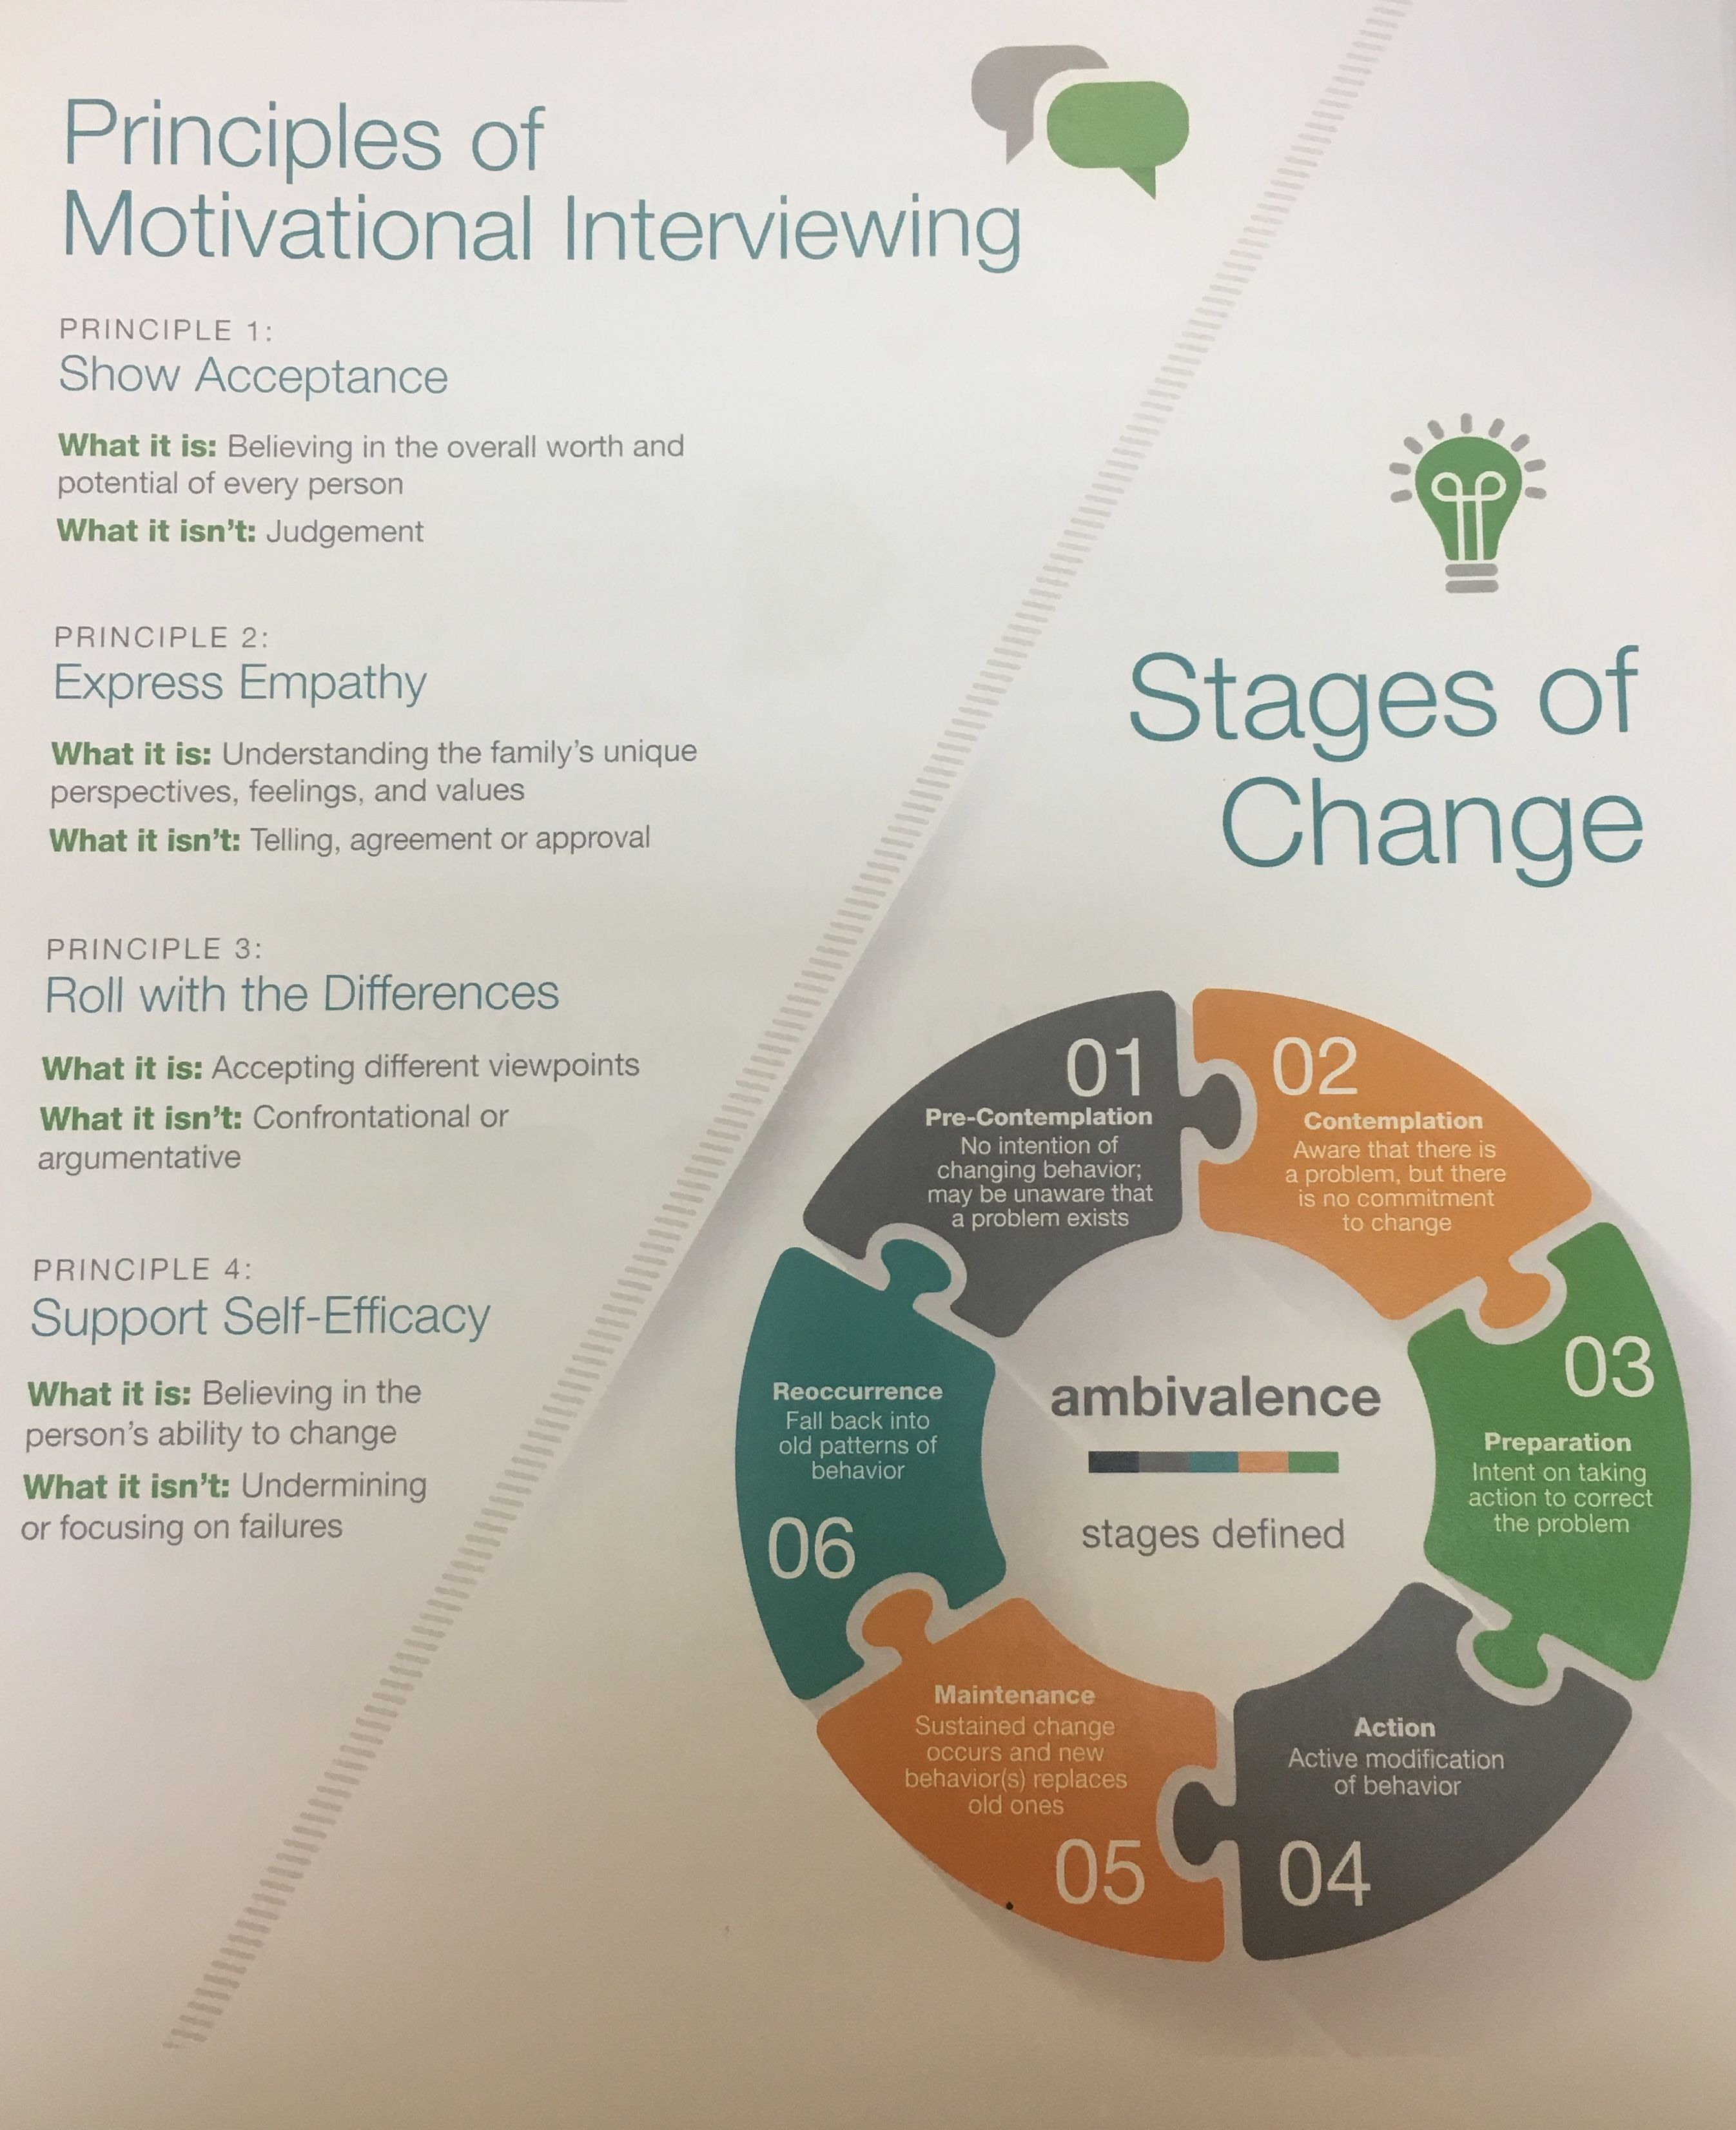 Principles Of Motivational Interviewing Amp Stages Of Change